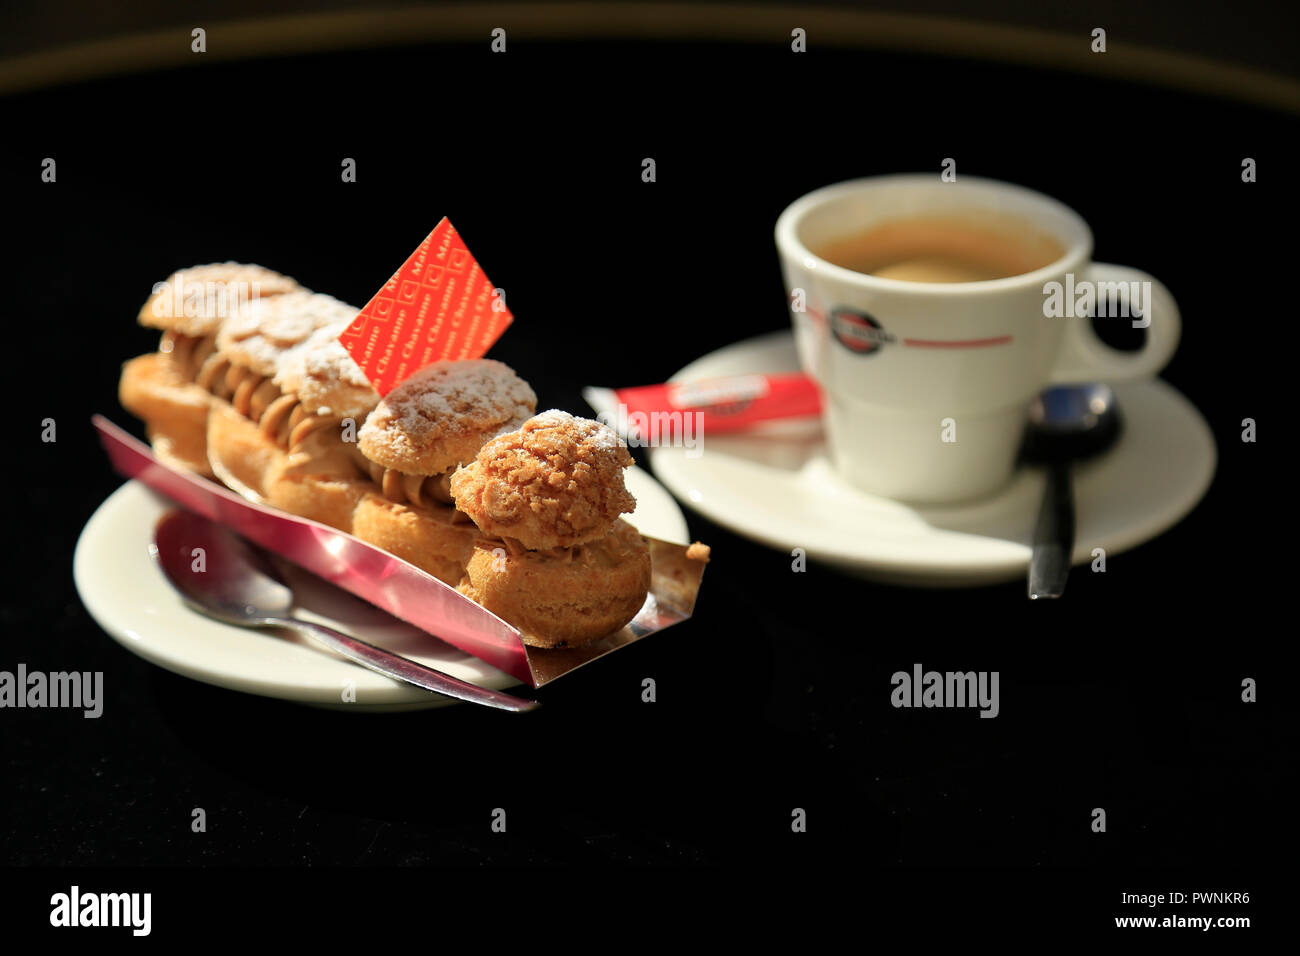 Paris Brest Patisserie and coffee on a black table. - Stock Image